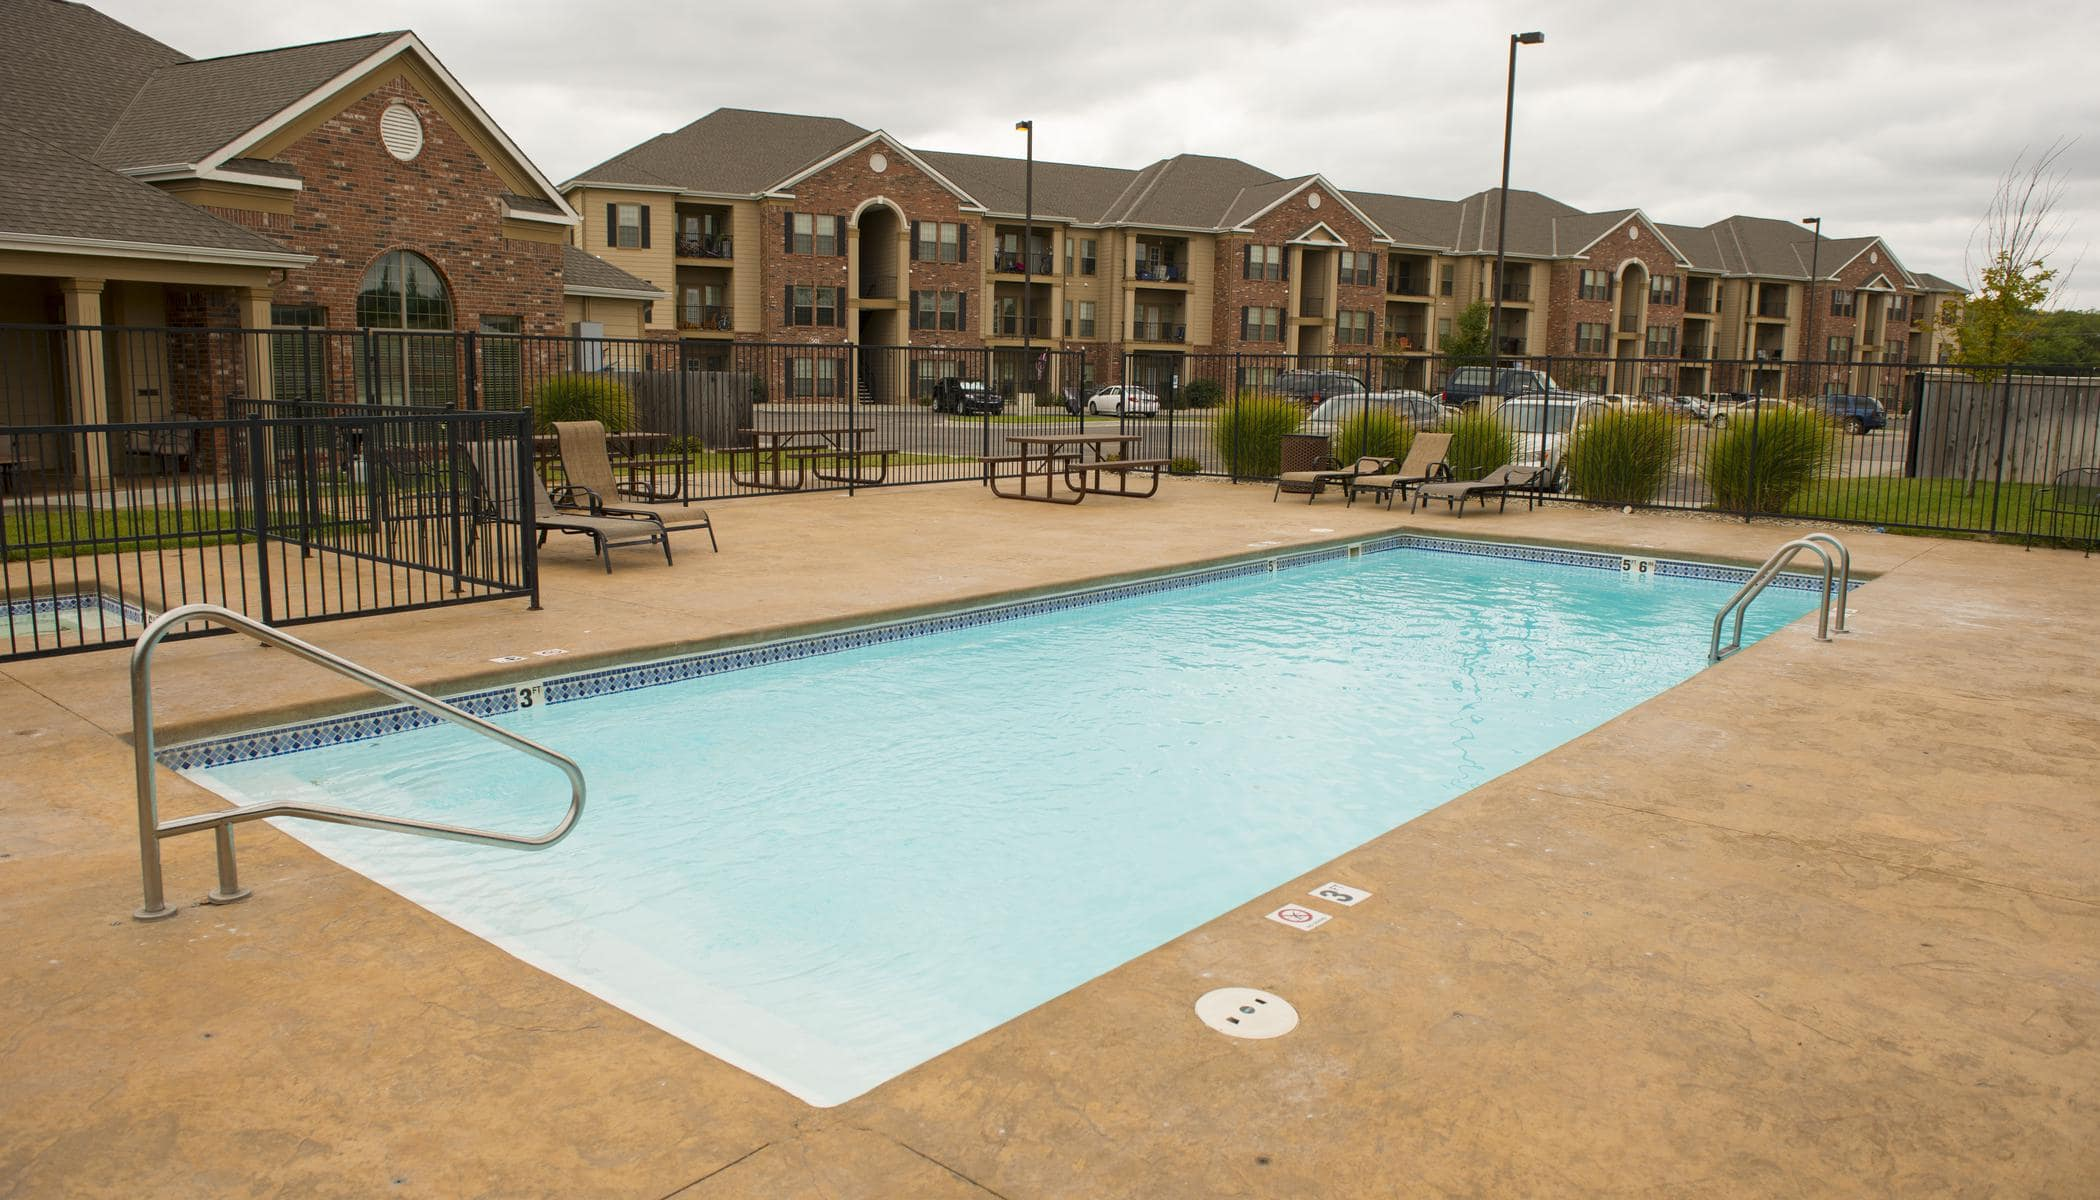 Beautiful swimming pool at apartments in Manhattan, KS